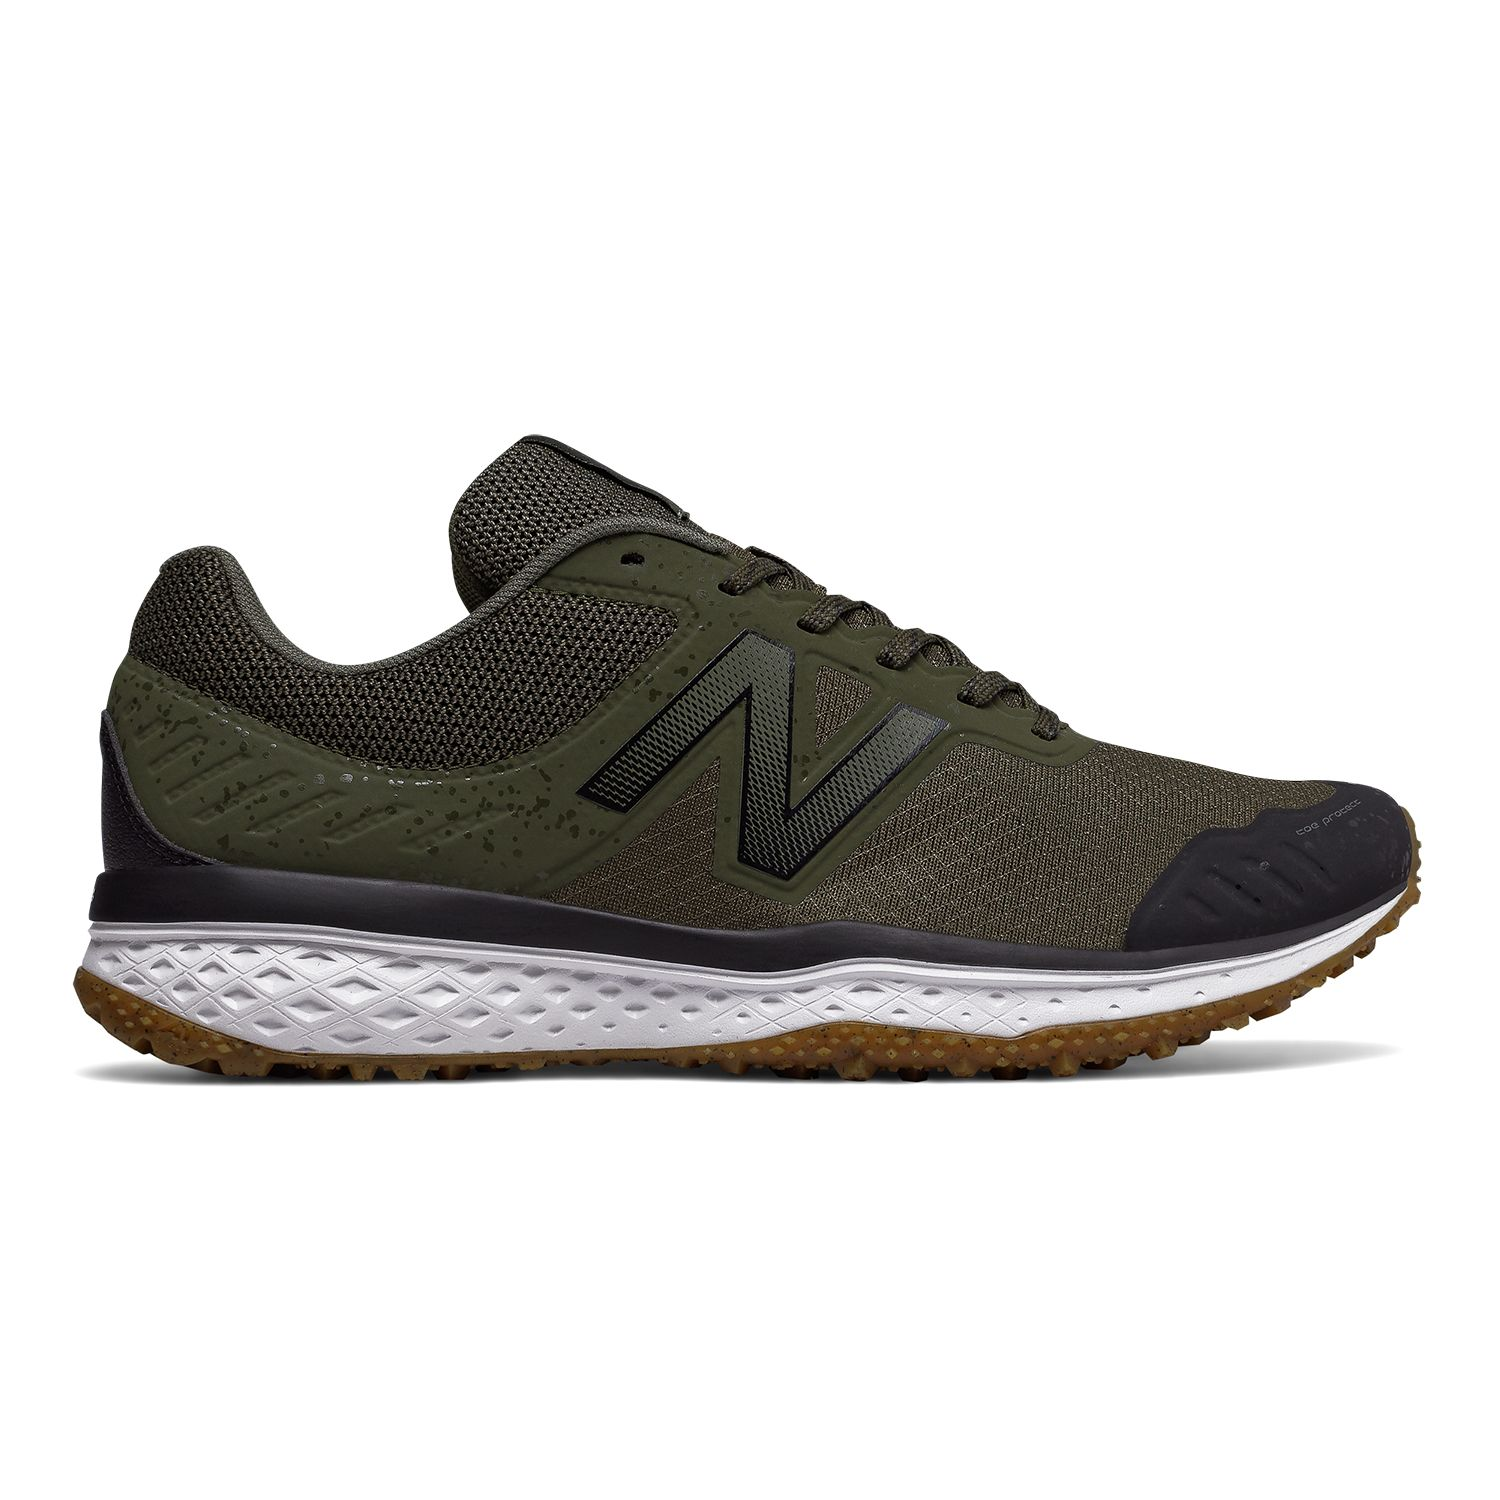 new balance 620 good for running